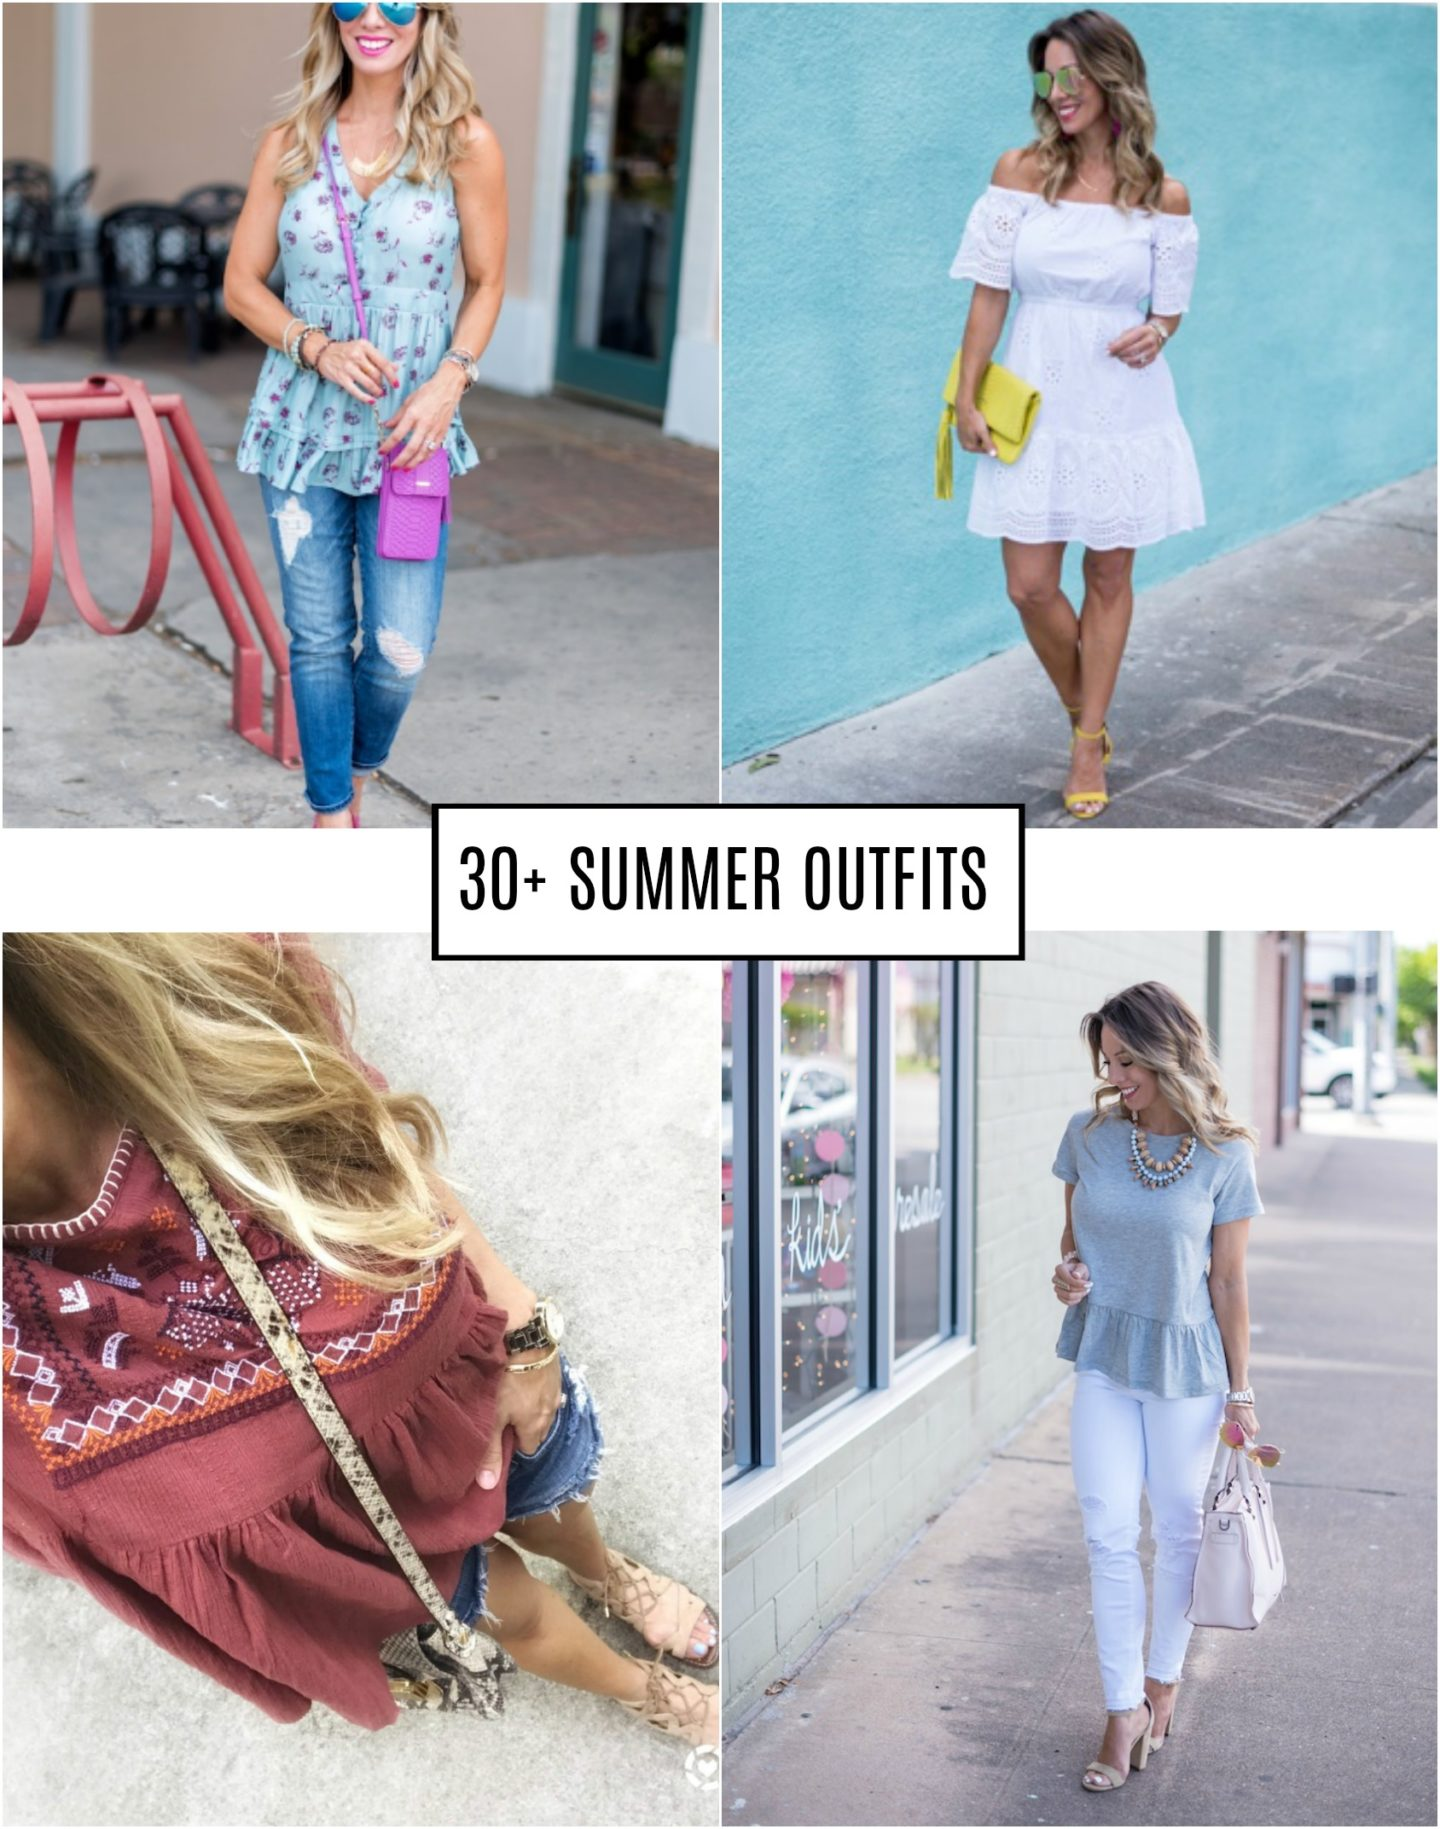 30+ Summer Cute Outfits